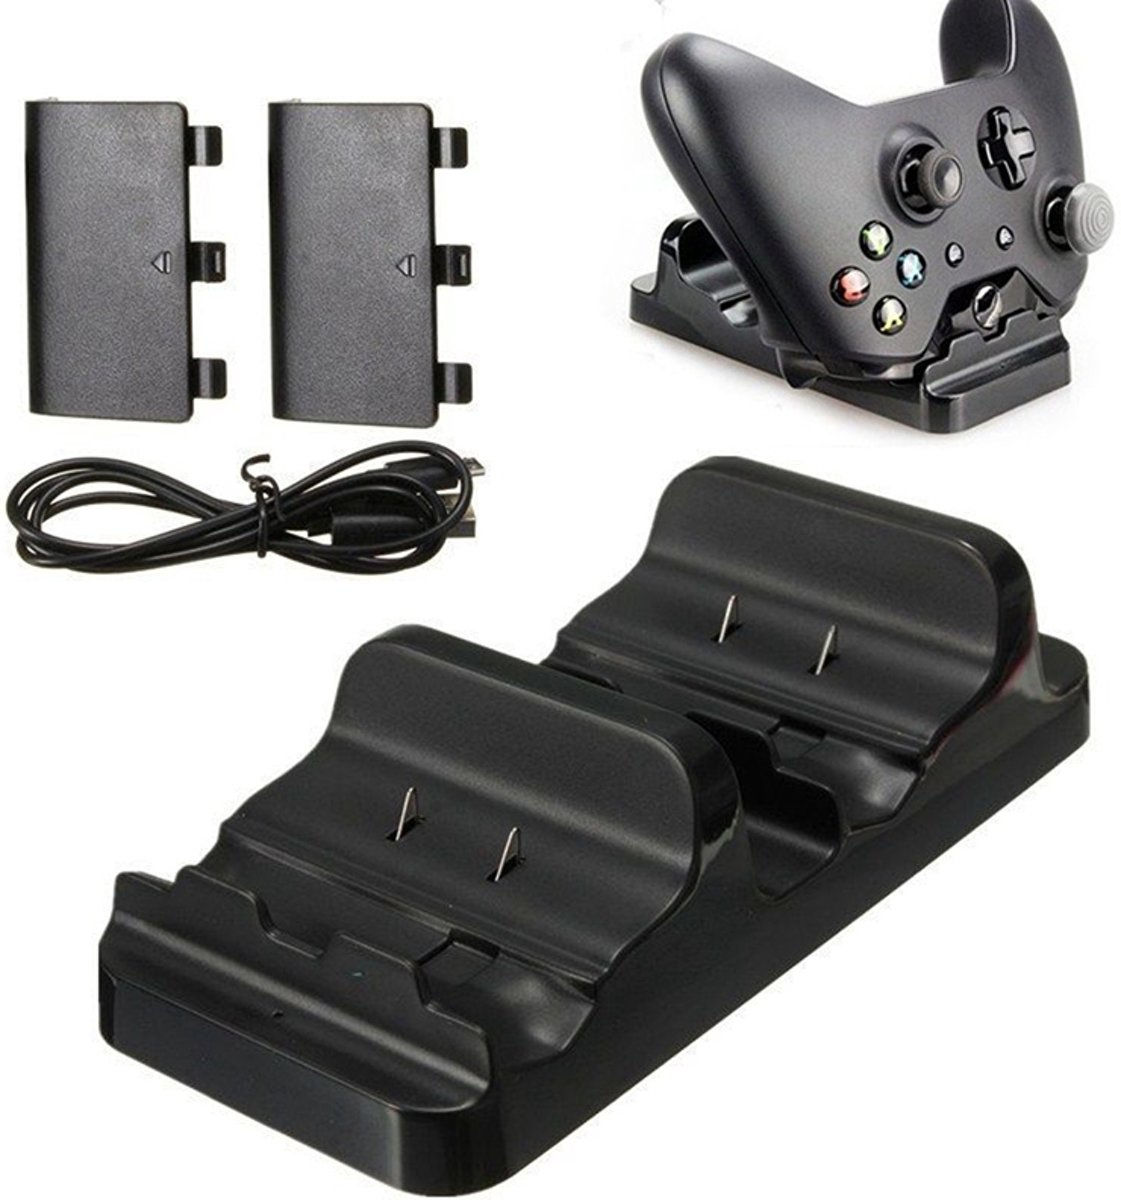 Controller Dock Charger Oplaad Station Voor Xbox One - USB Docking Op Laadkabel - Laadstation